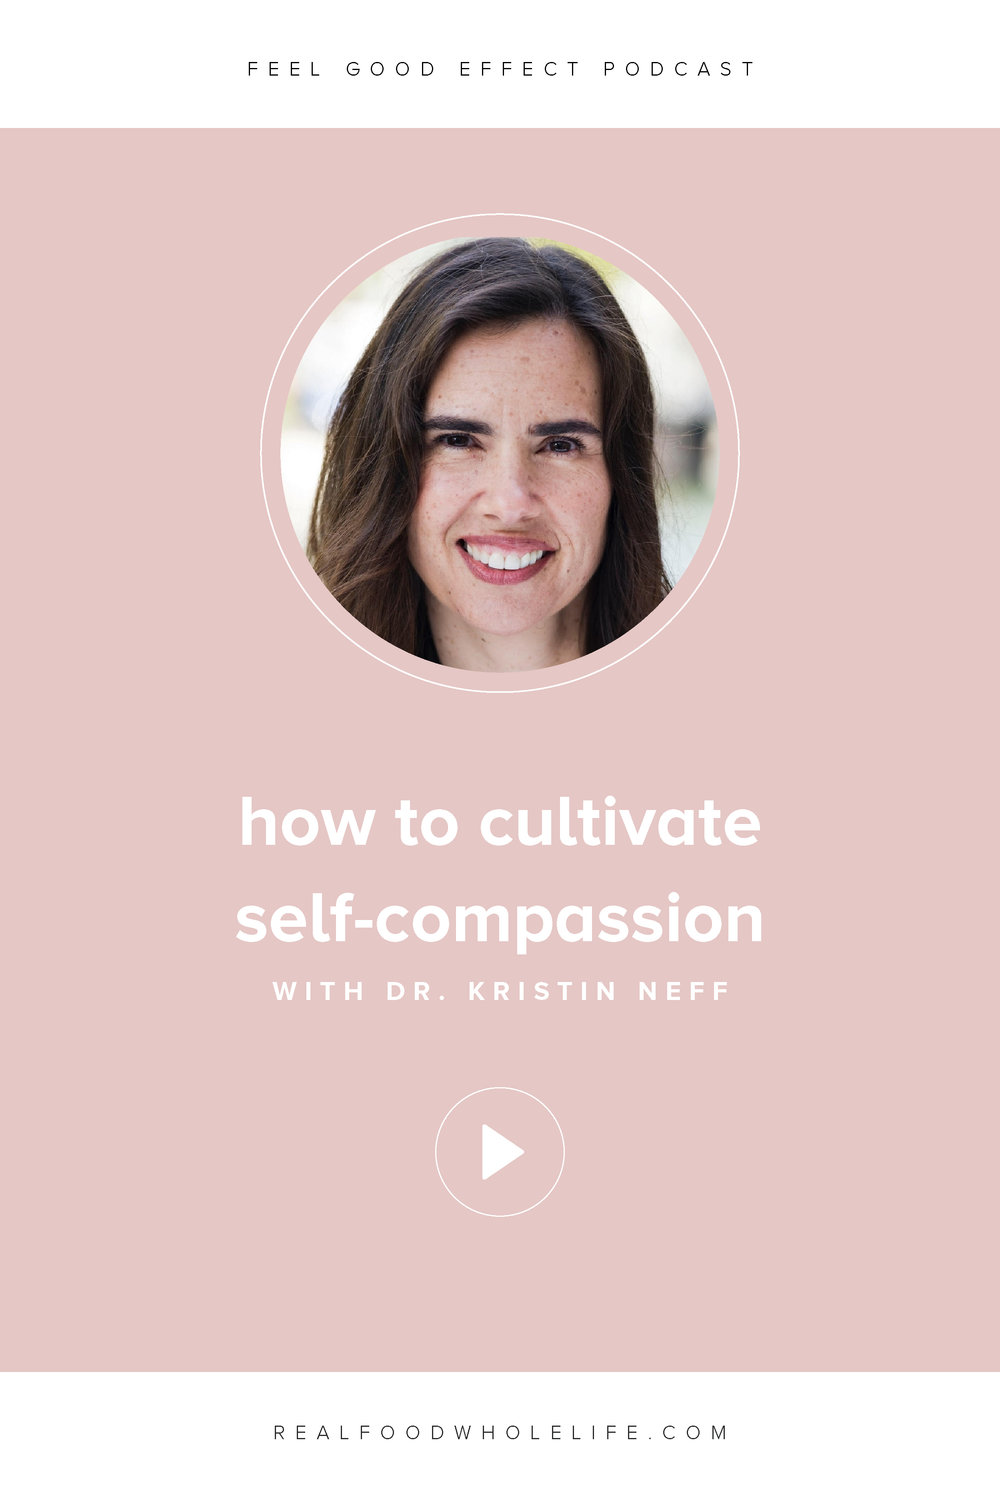 In this episode of the Feel Good Effect Podcast, Dr. Kristen Neff dives into how to cultivate self compassion in your own life, what it has to do with well being, and how to use self compassion to reach wellness goals. #feelgoodeffect #podcast #selfcompassion